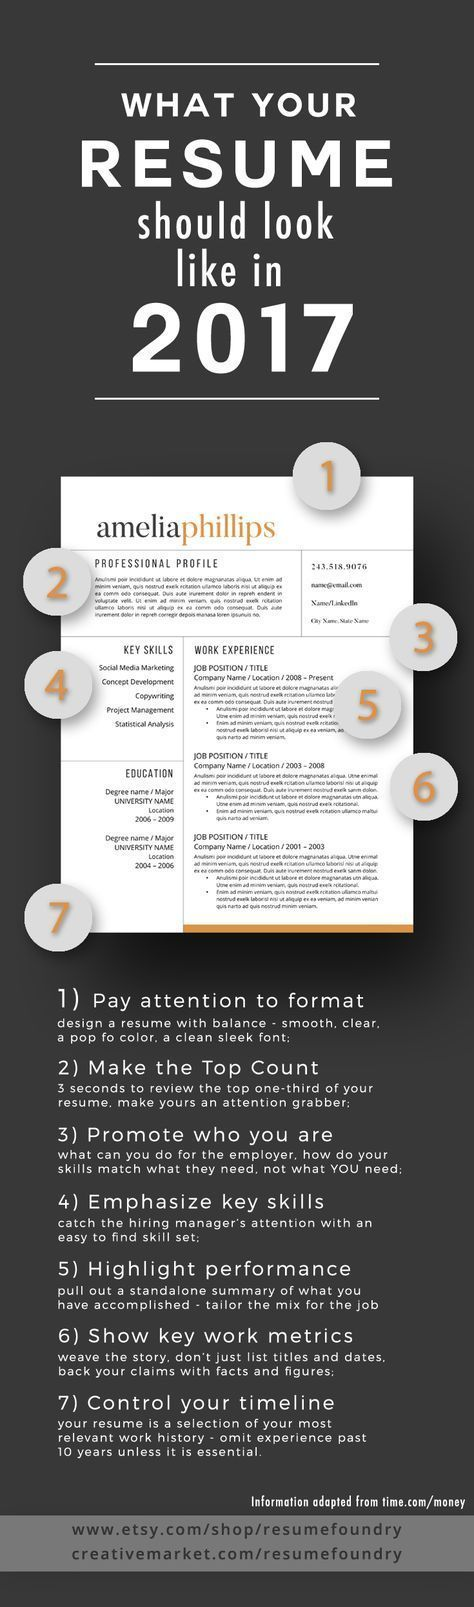 7 tips to transform your resume to 2017 Check out the article at - top resume skills